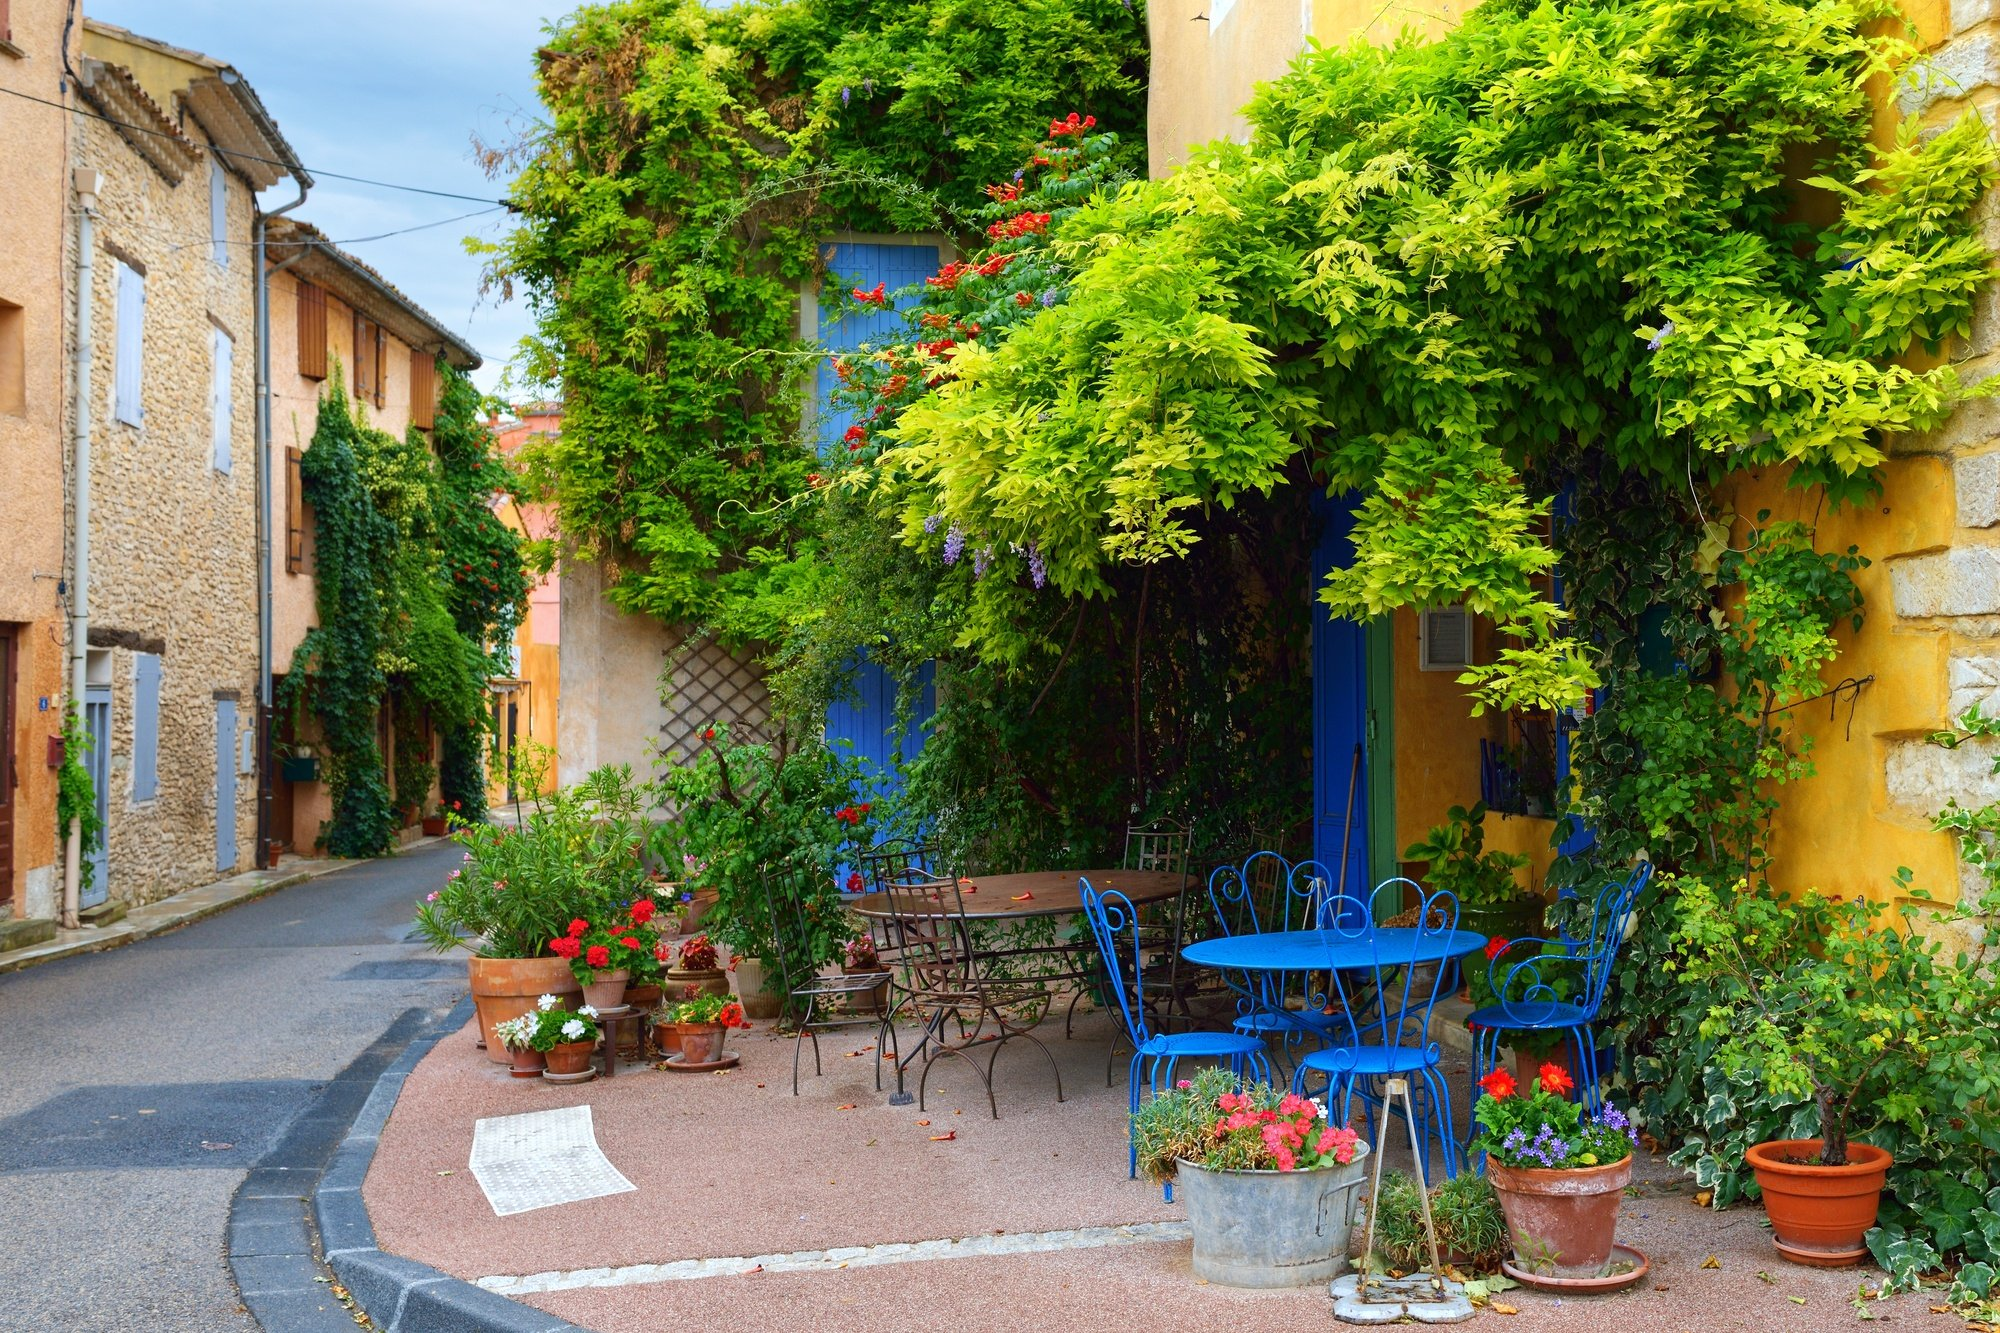 A beautiful street scene in Villes-sur-Auzon in Provence, France